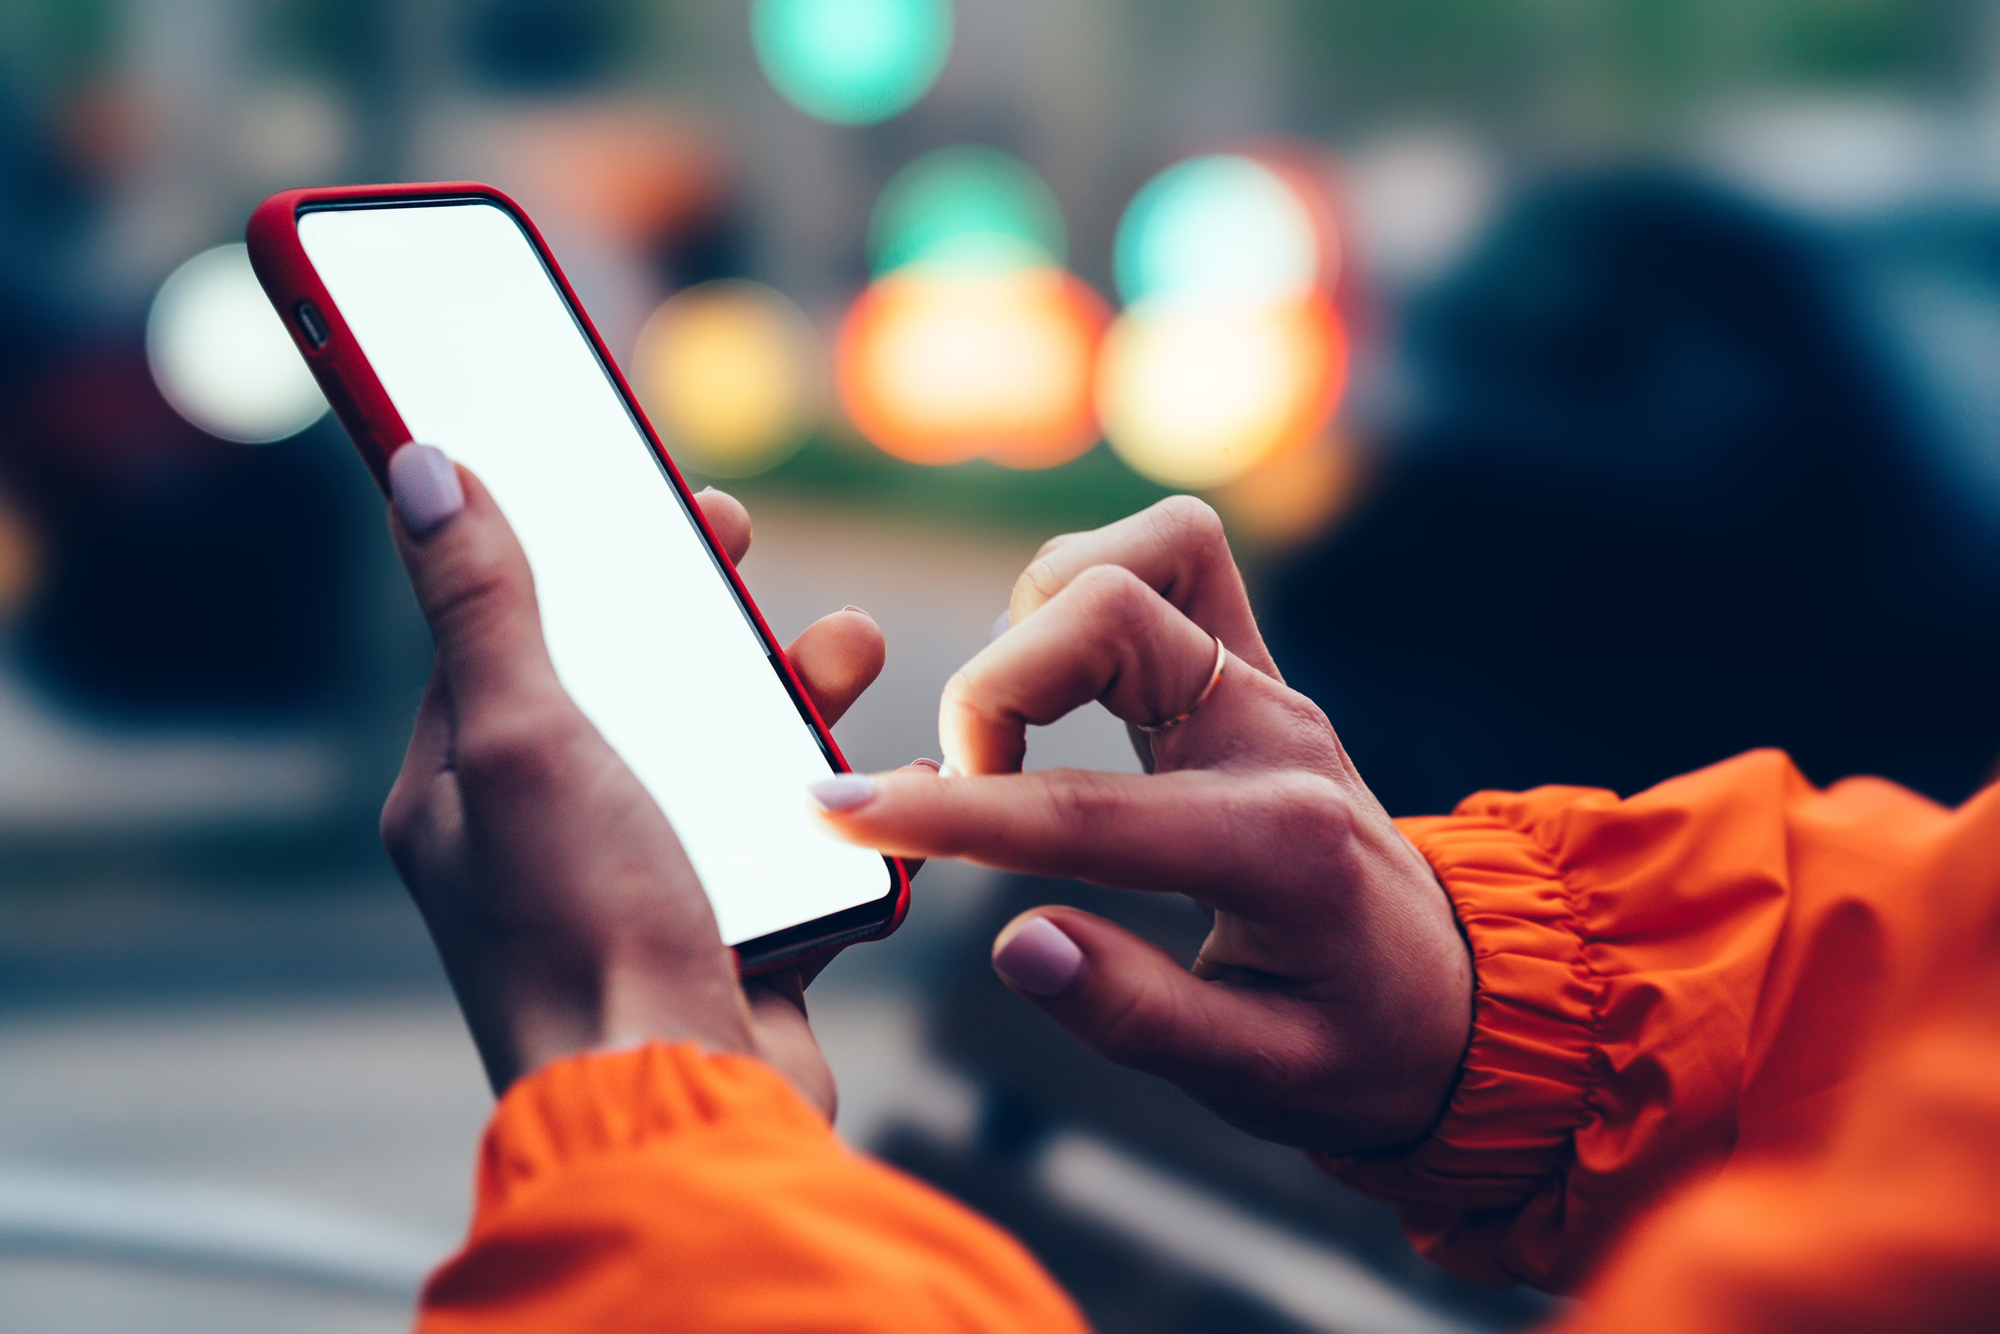 Close up view of female hands holding mobile phone touching mock up blank screen with finger. People using app on smartphone on street with bokeh blurred city lights. Texting message in social network